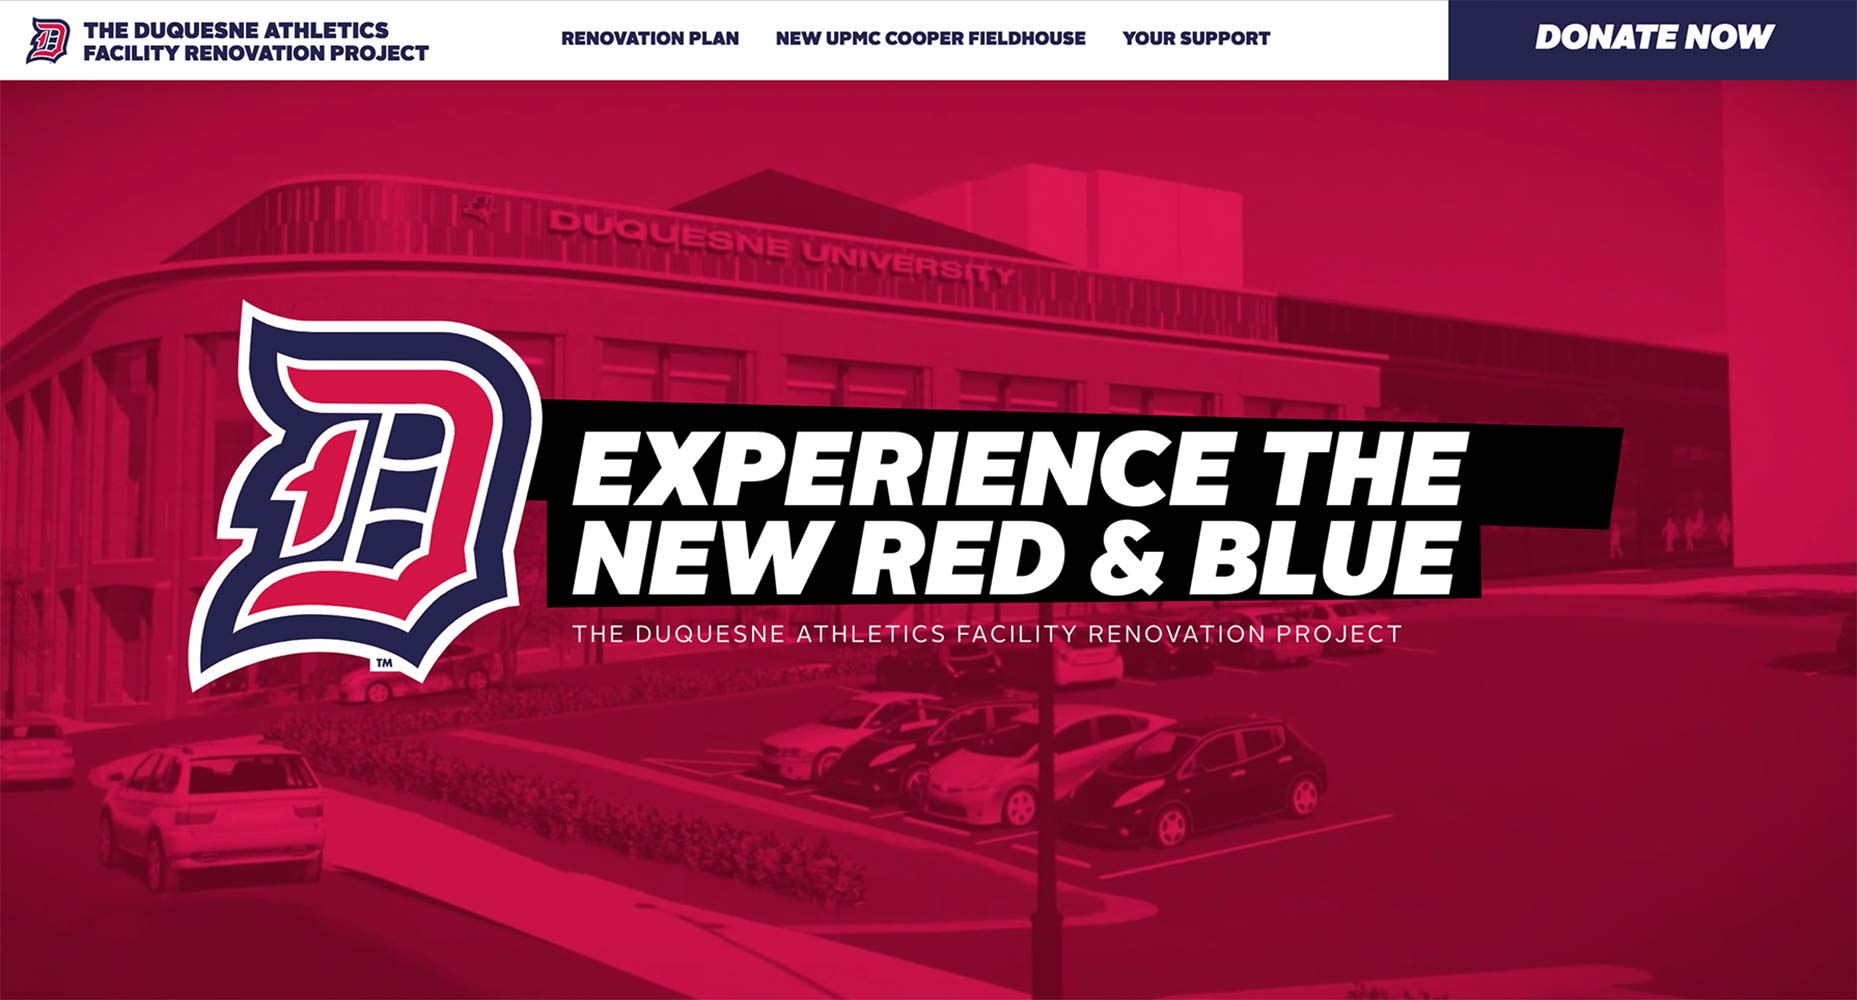 Duquesne Athletics Facility Renovation Website | <a href='https://duquesneathleticsfacilityrenovation.com/' target='_blank'>Visit Site <i class='nc-icon-glyph arrows-1_share-91'></i></a><br><span>Duquesne University</span>